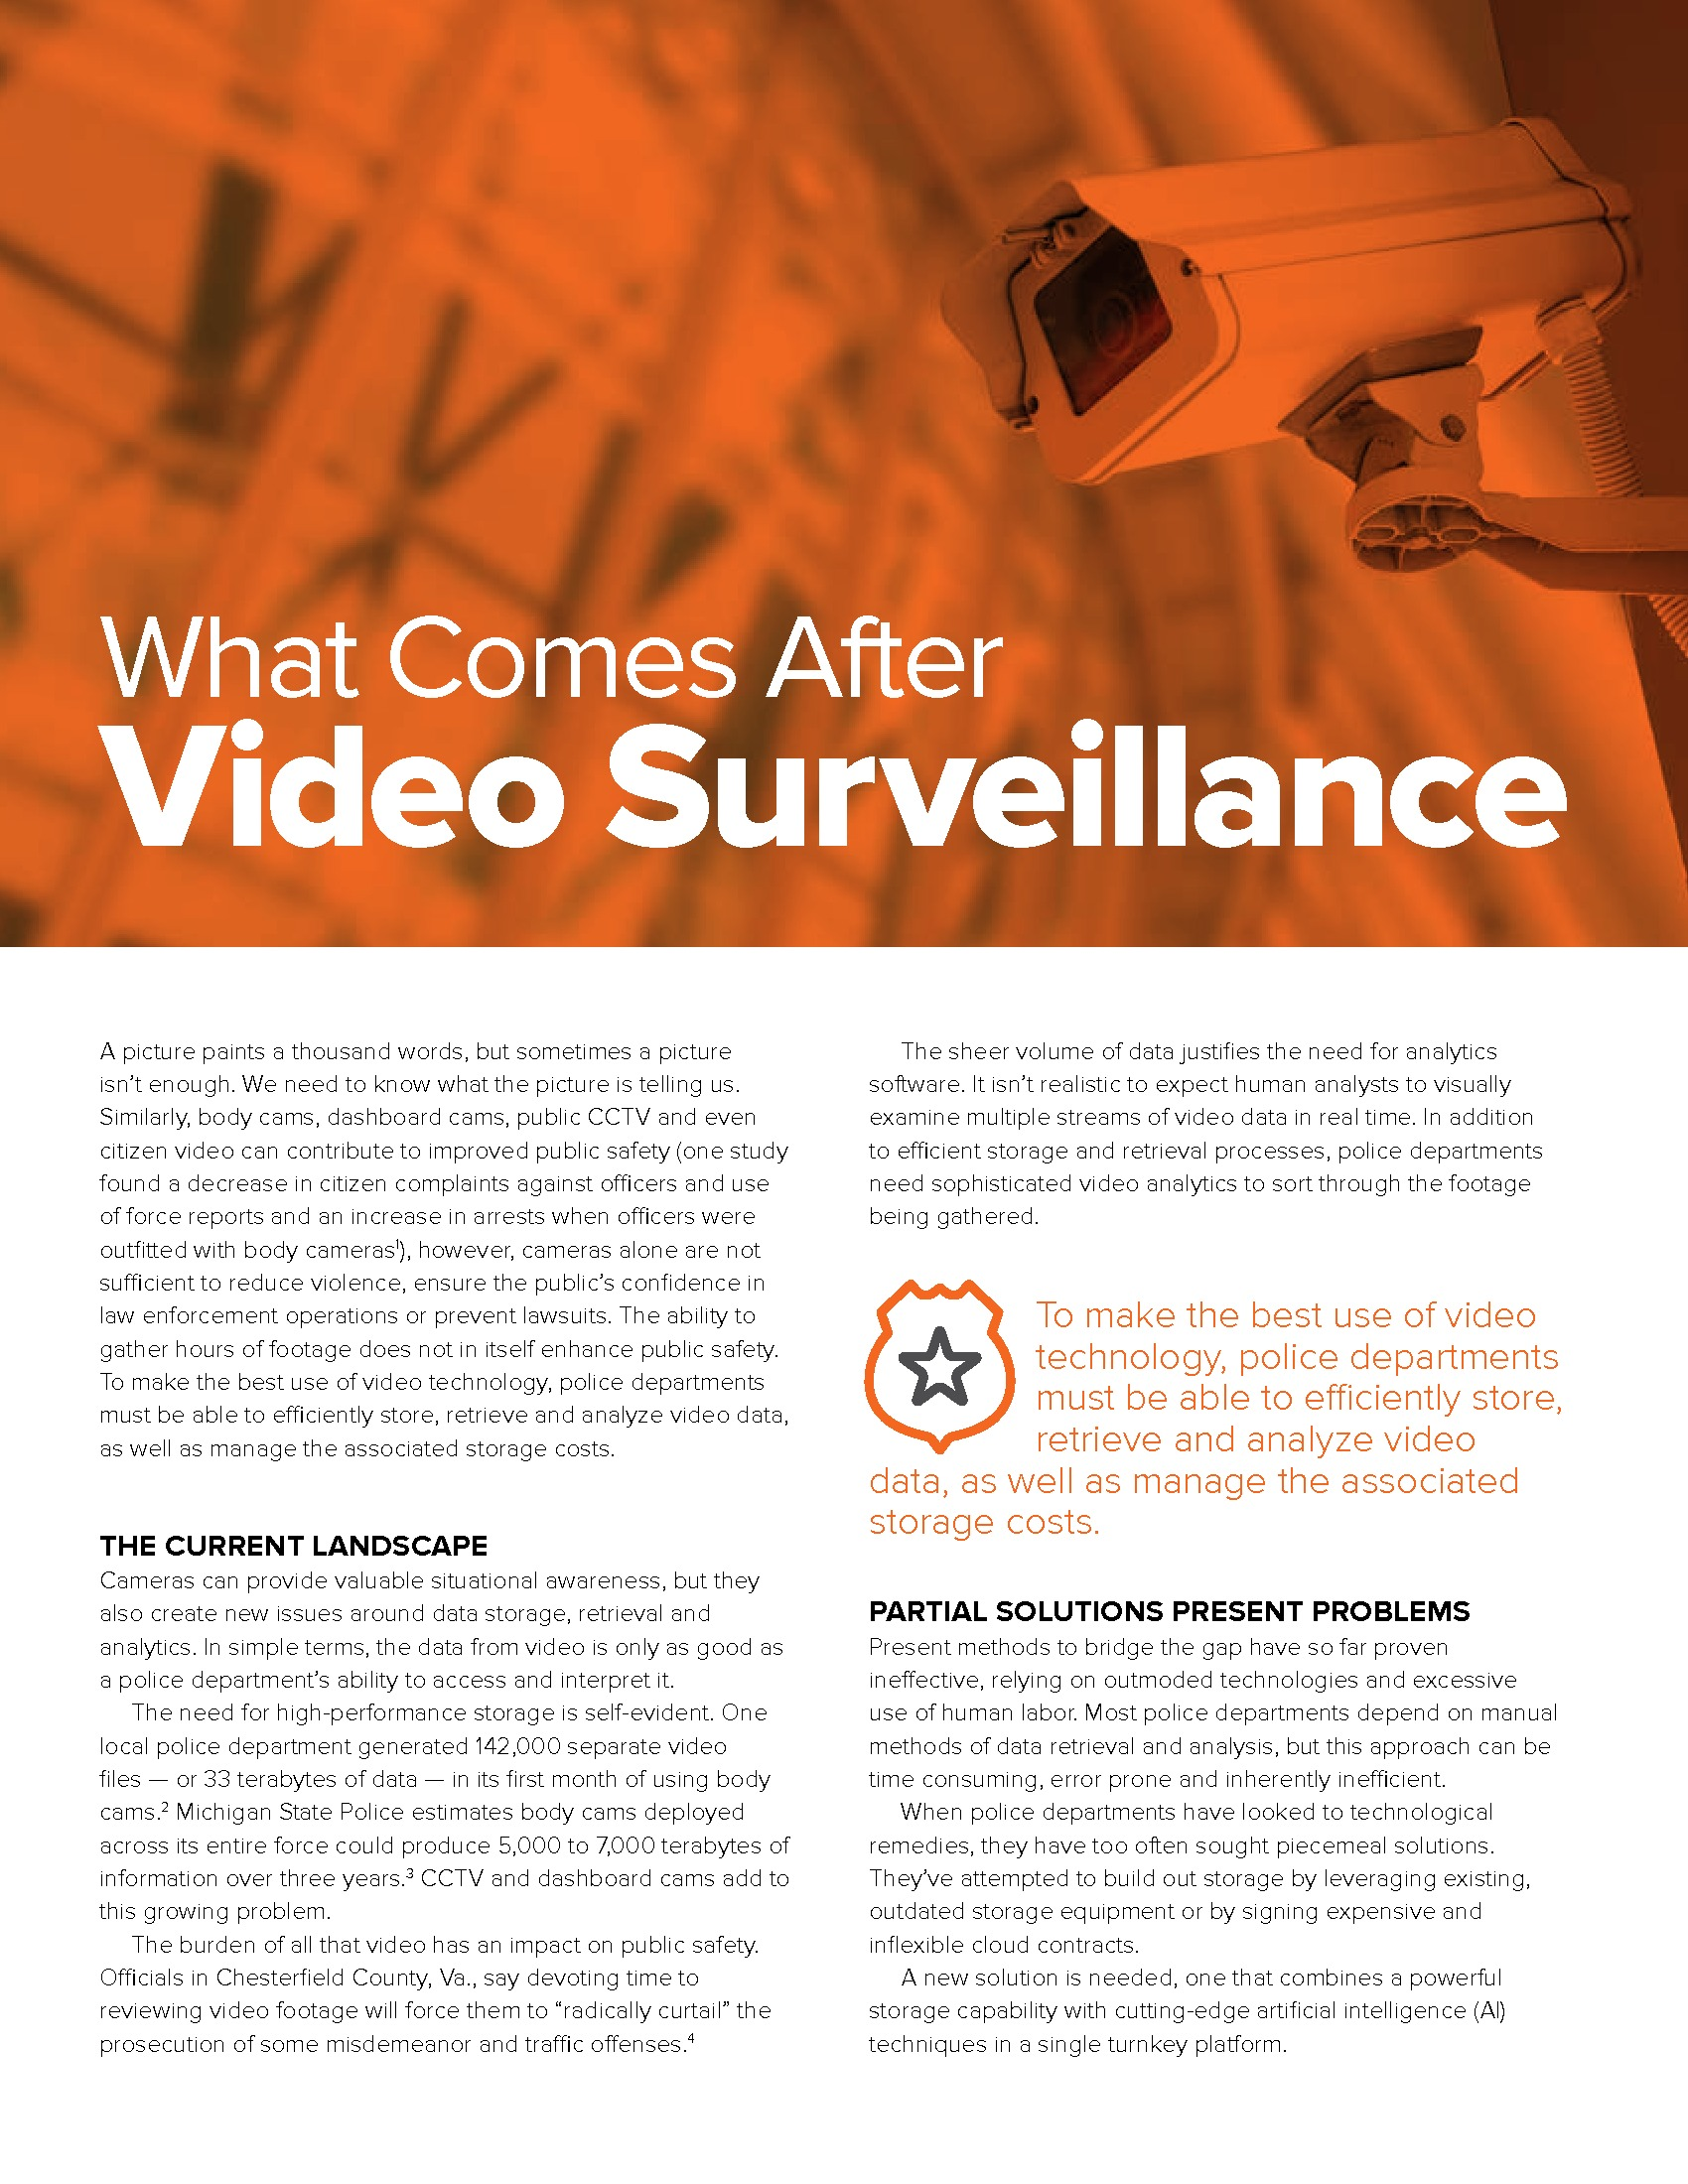 EM - Pure Storage - TLP - 180503 - What Comes After Video Surveillance